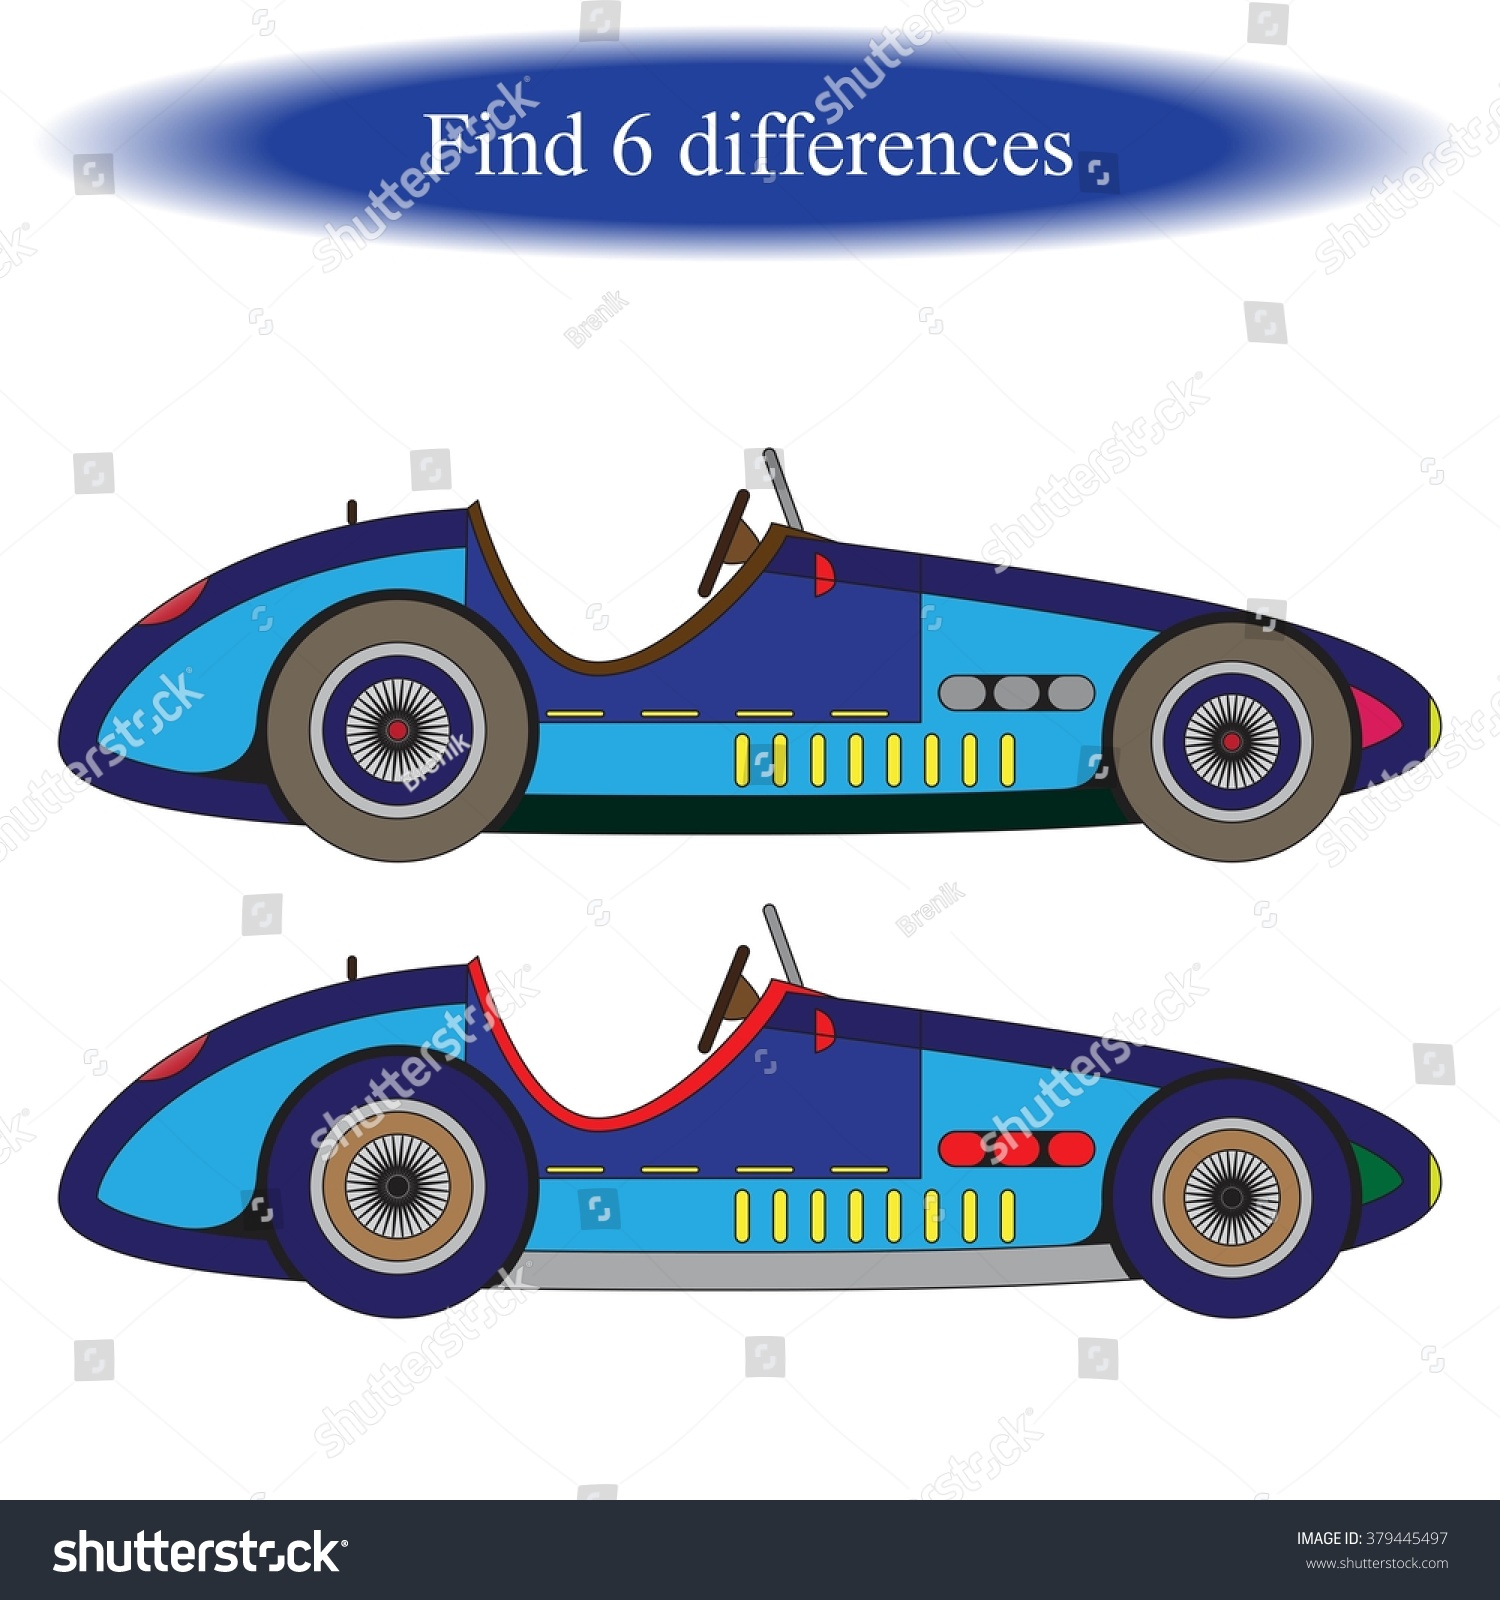 Find Differences Vintage Car Retro Car Stock Vector 379445497 ...